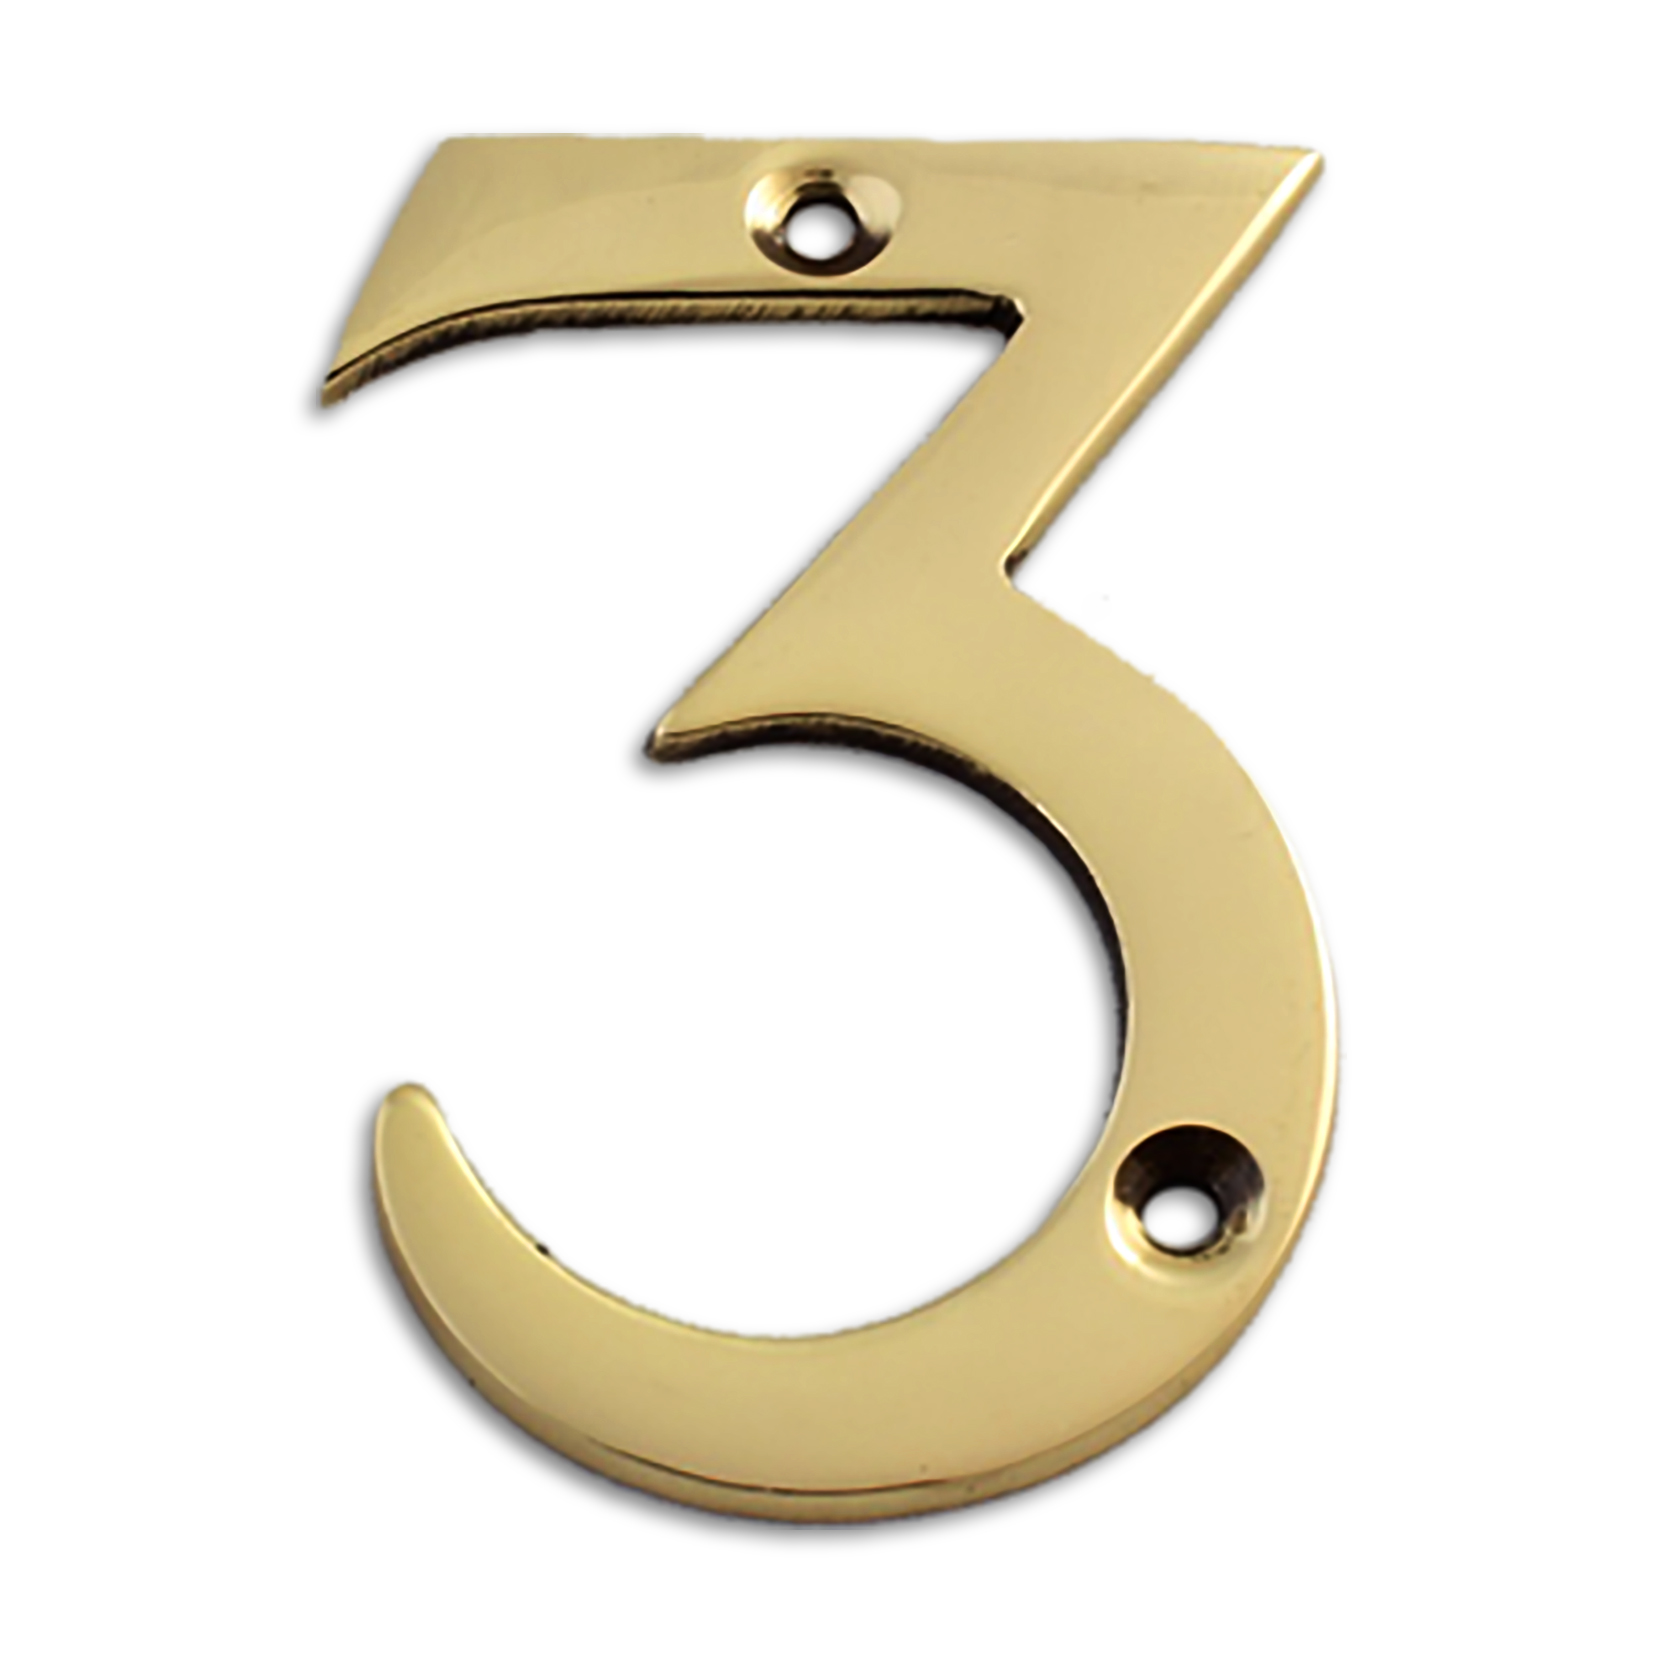 3-inch brass metal house number in polished brass finish - metal number 3